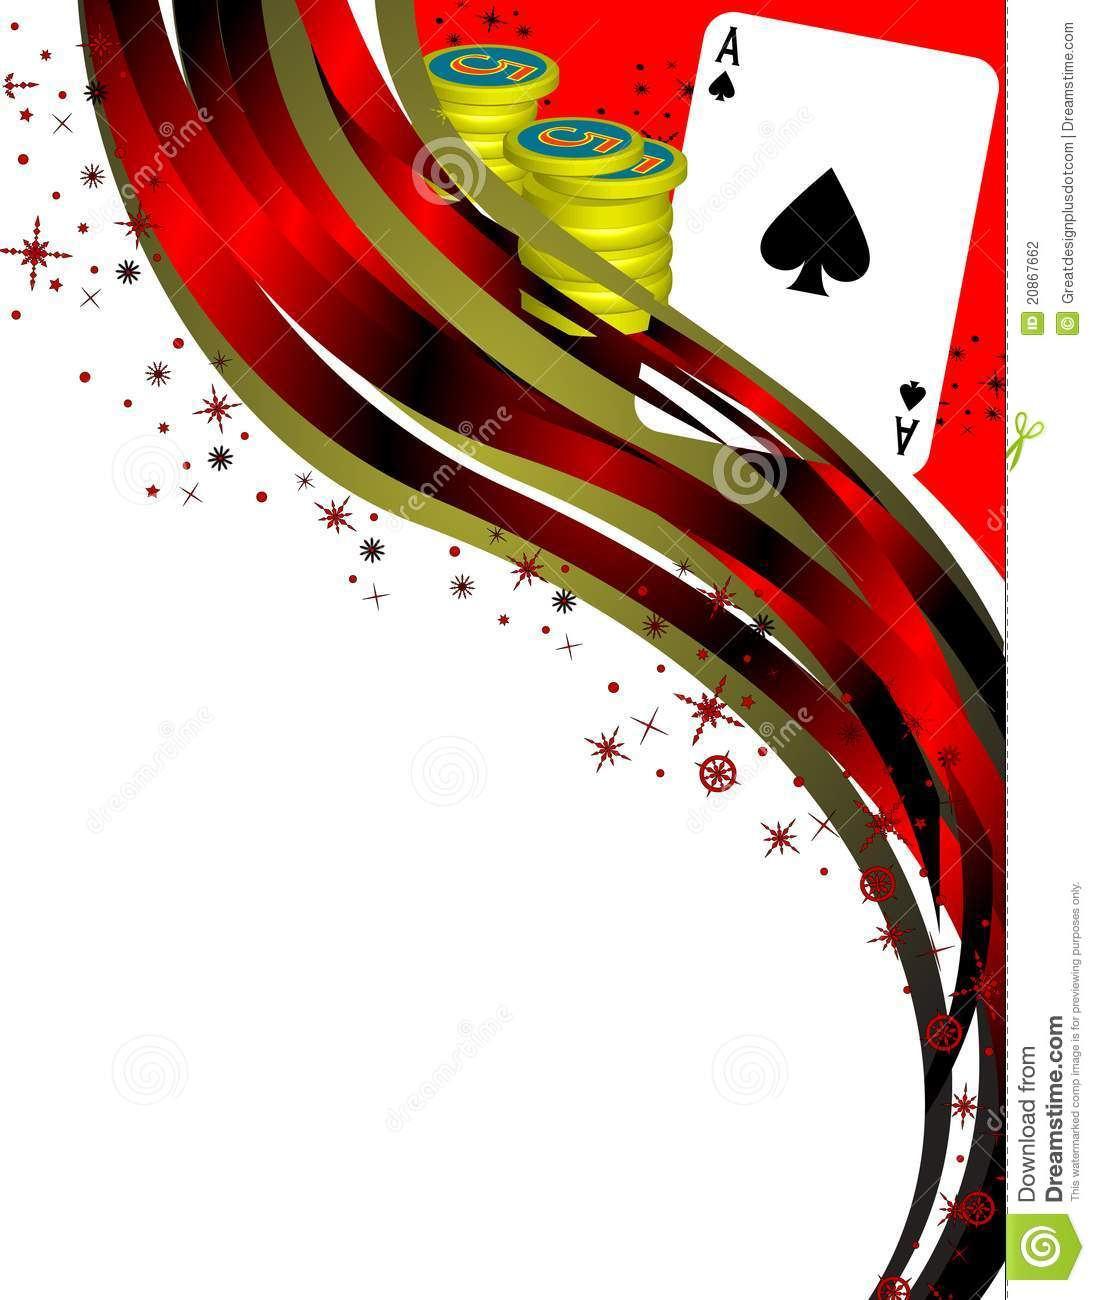 An image with an Ace of Spades, some Poker Chips, and abstract border ...